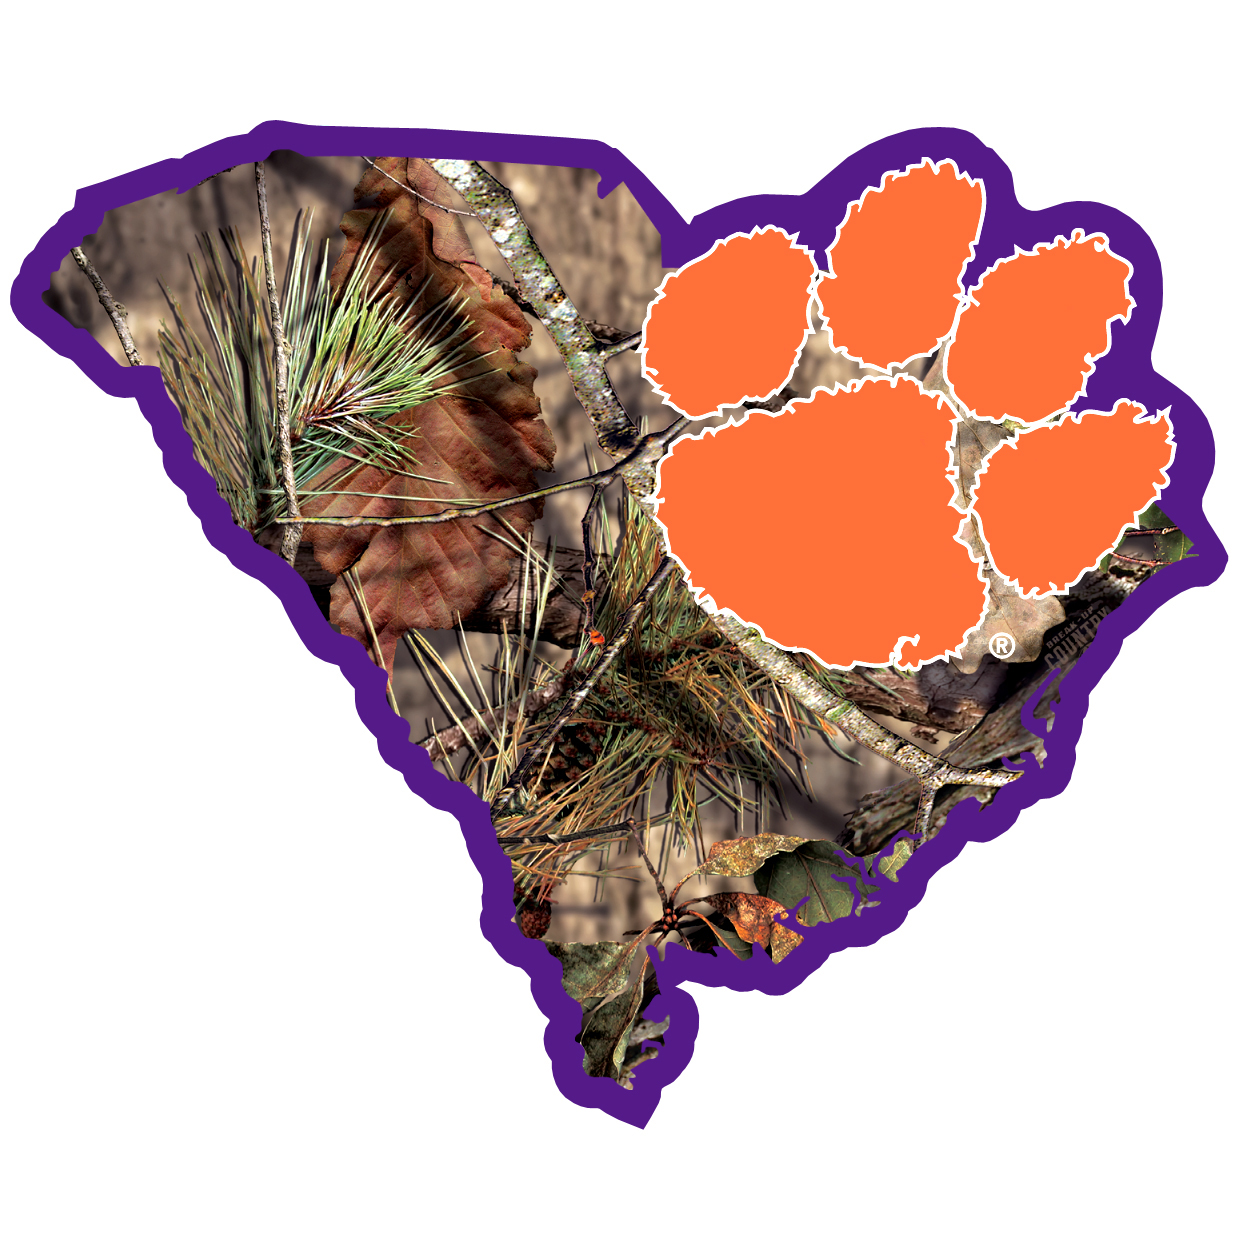 Clemson Tigers State Decal w/Mossy Oak Camo - It's a home state decal with a sporty twist! This Clemson Tigers decal features the team logo over a silhouette of the state in team colors and Mossy Oak camo and a helmet marking the home of the team. The decal is approximately 5 inches on repositionable vinyl.